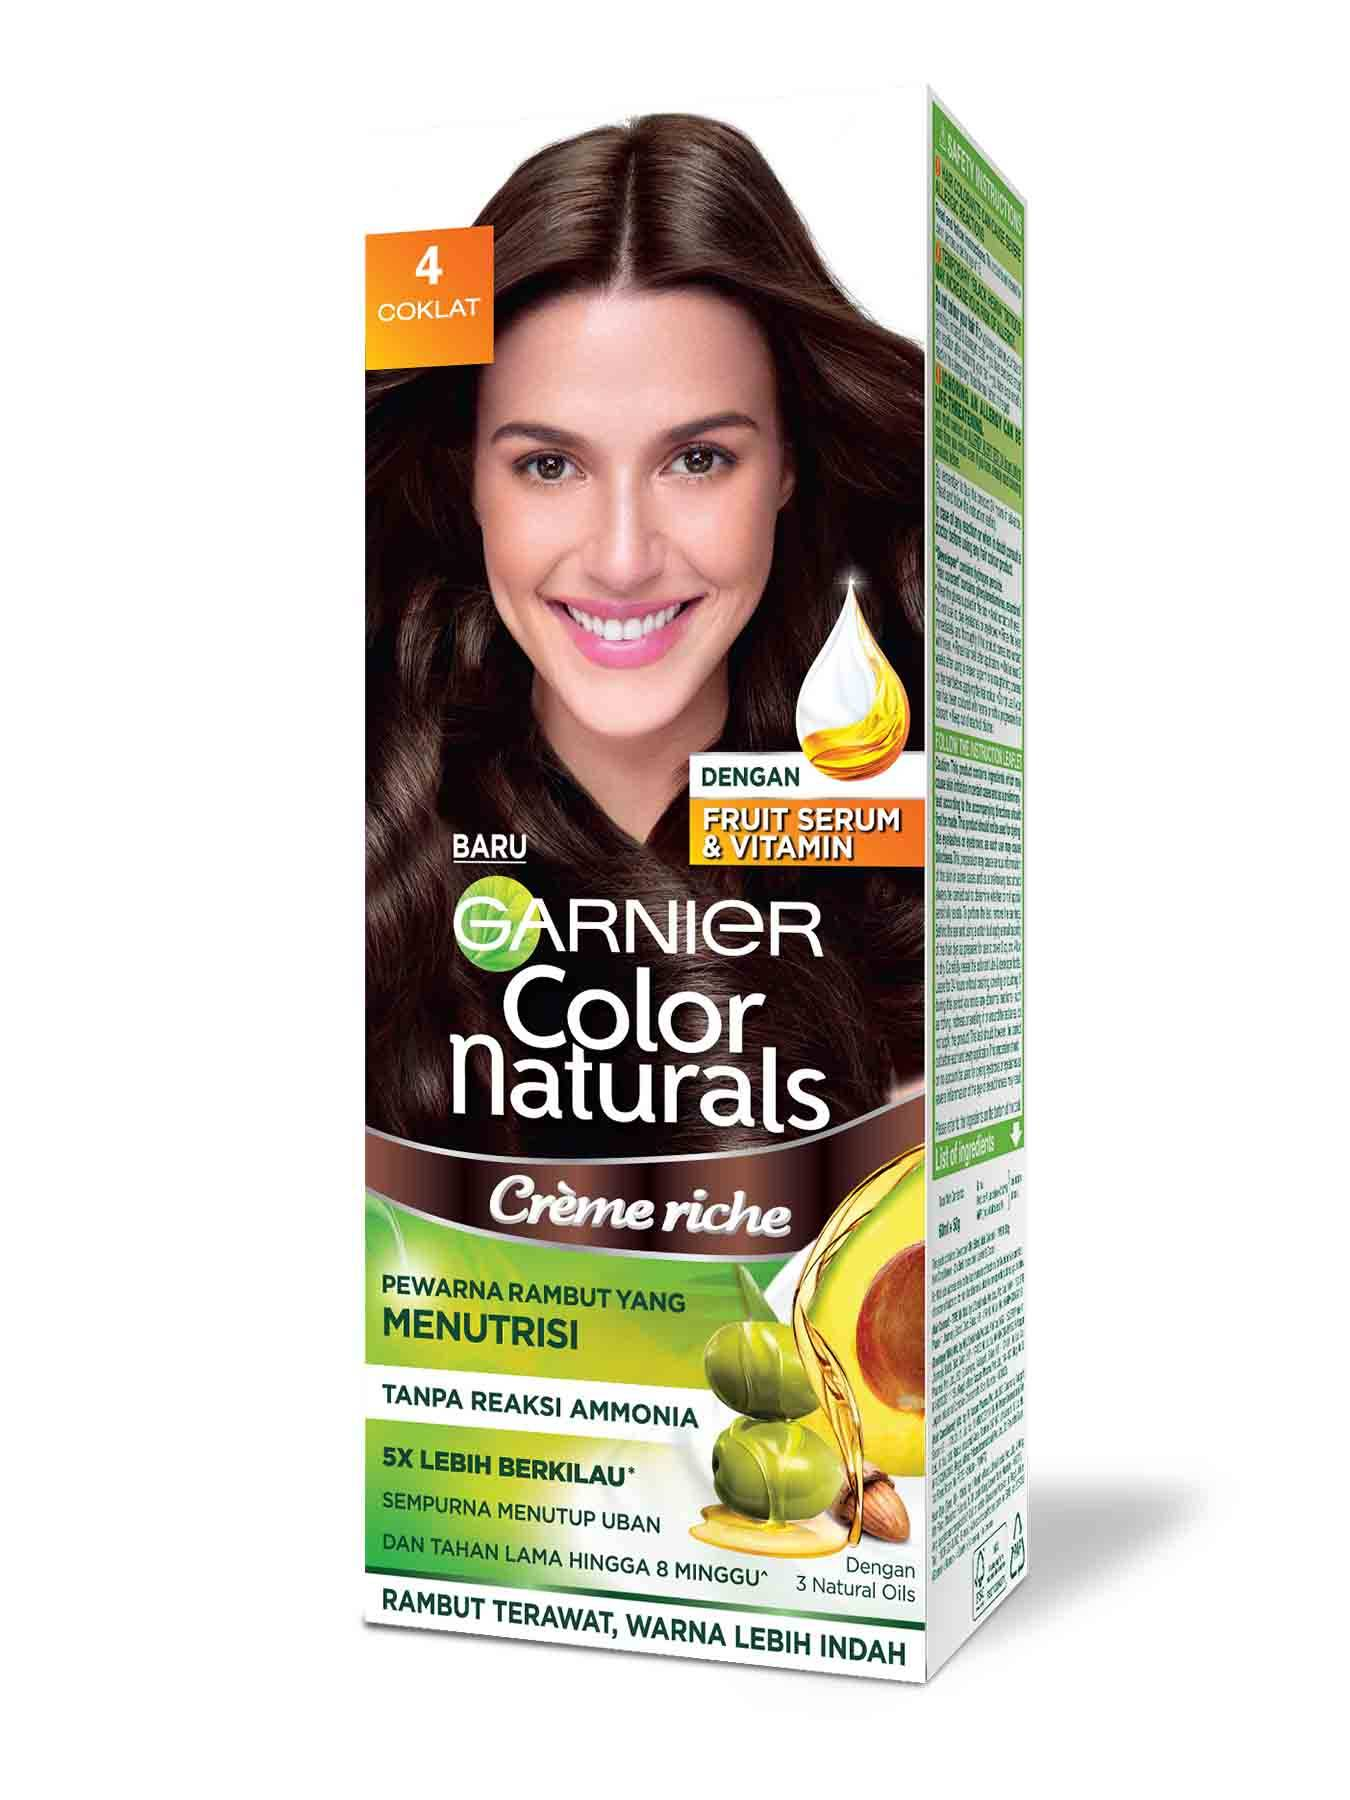 garnier color naturals creme riche 4 coklat brown